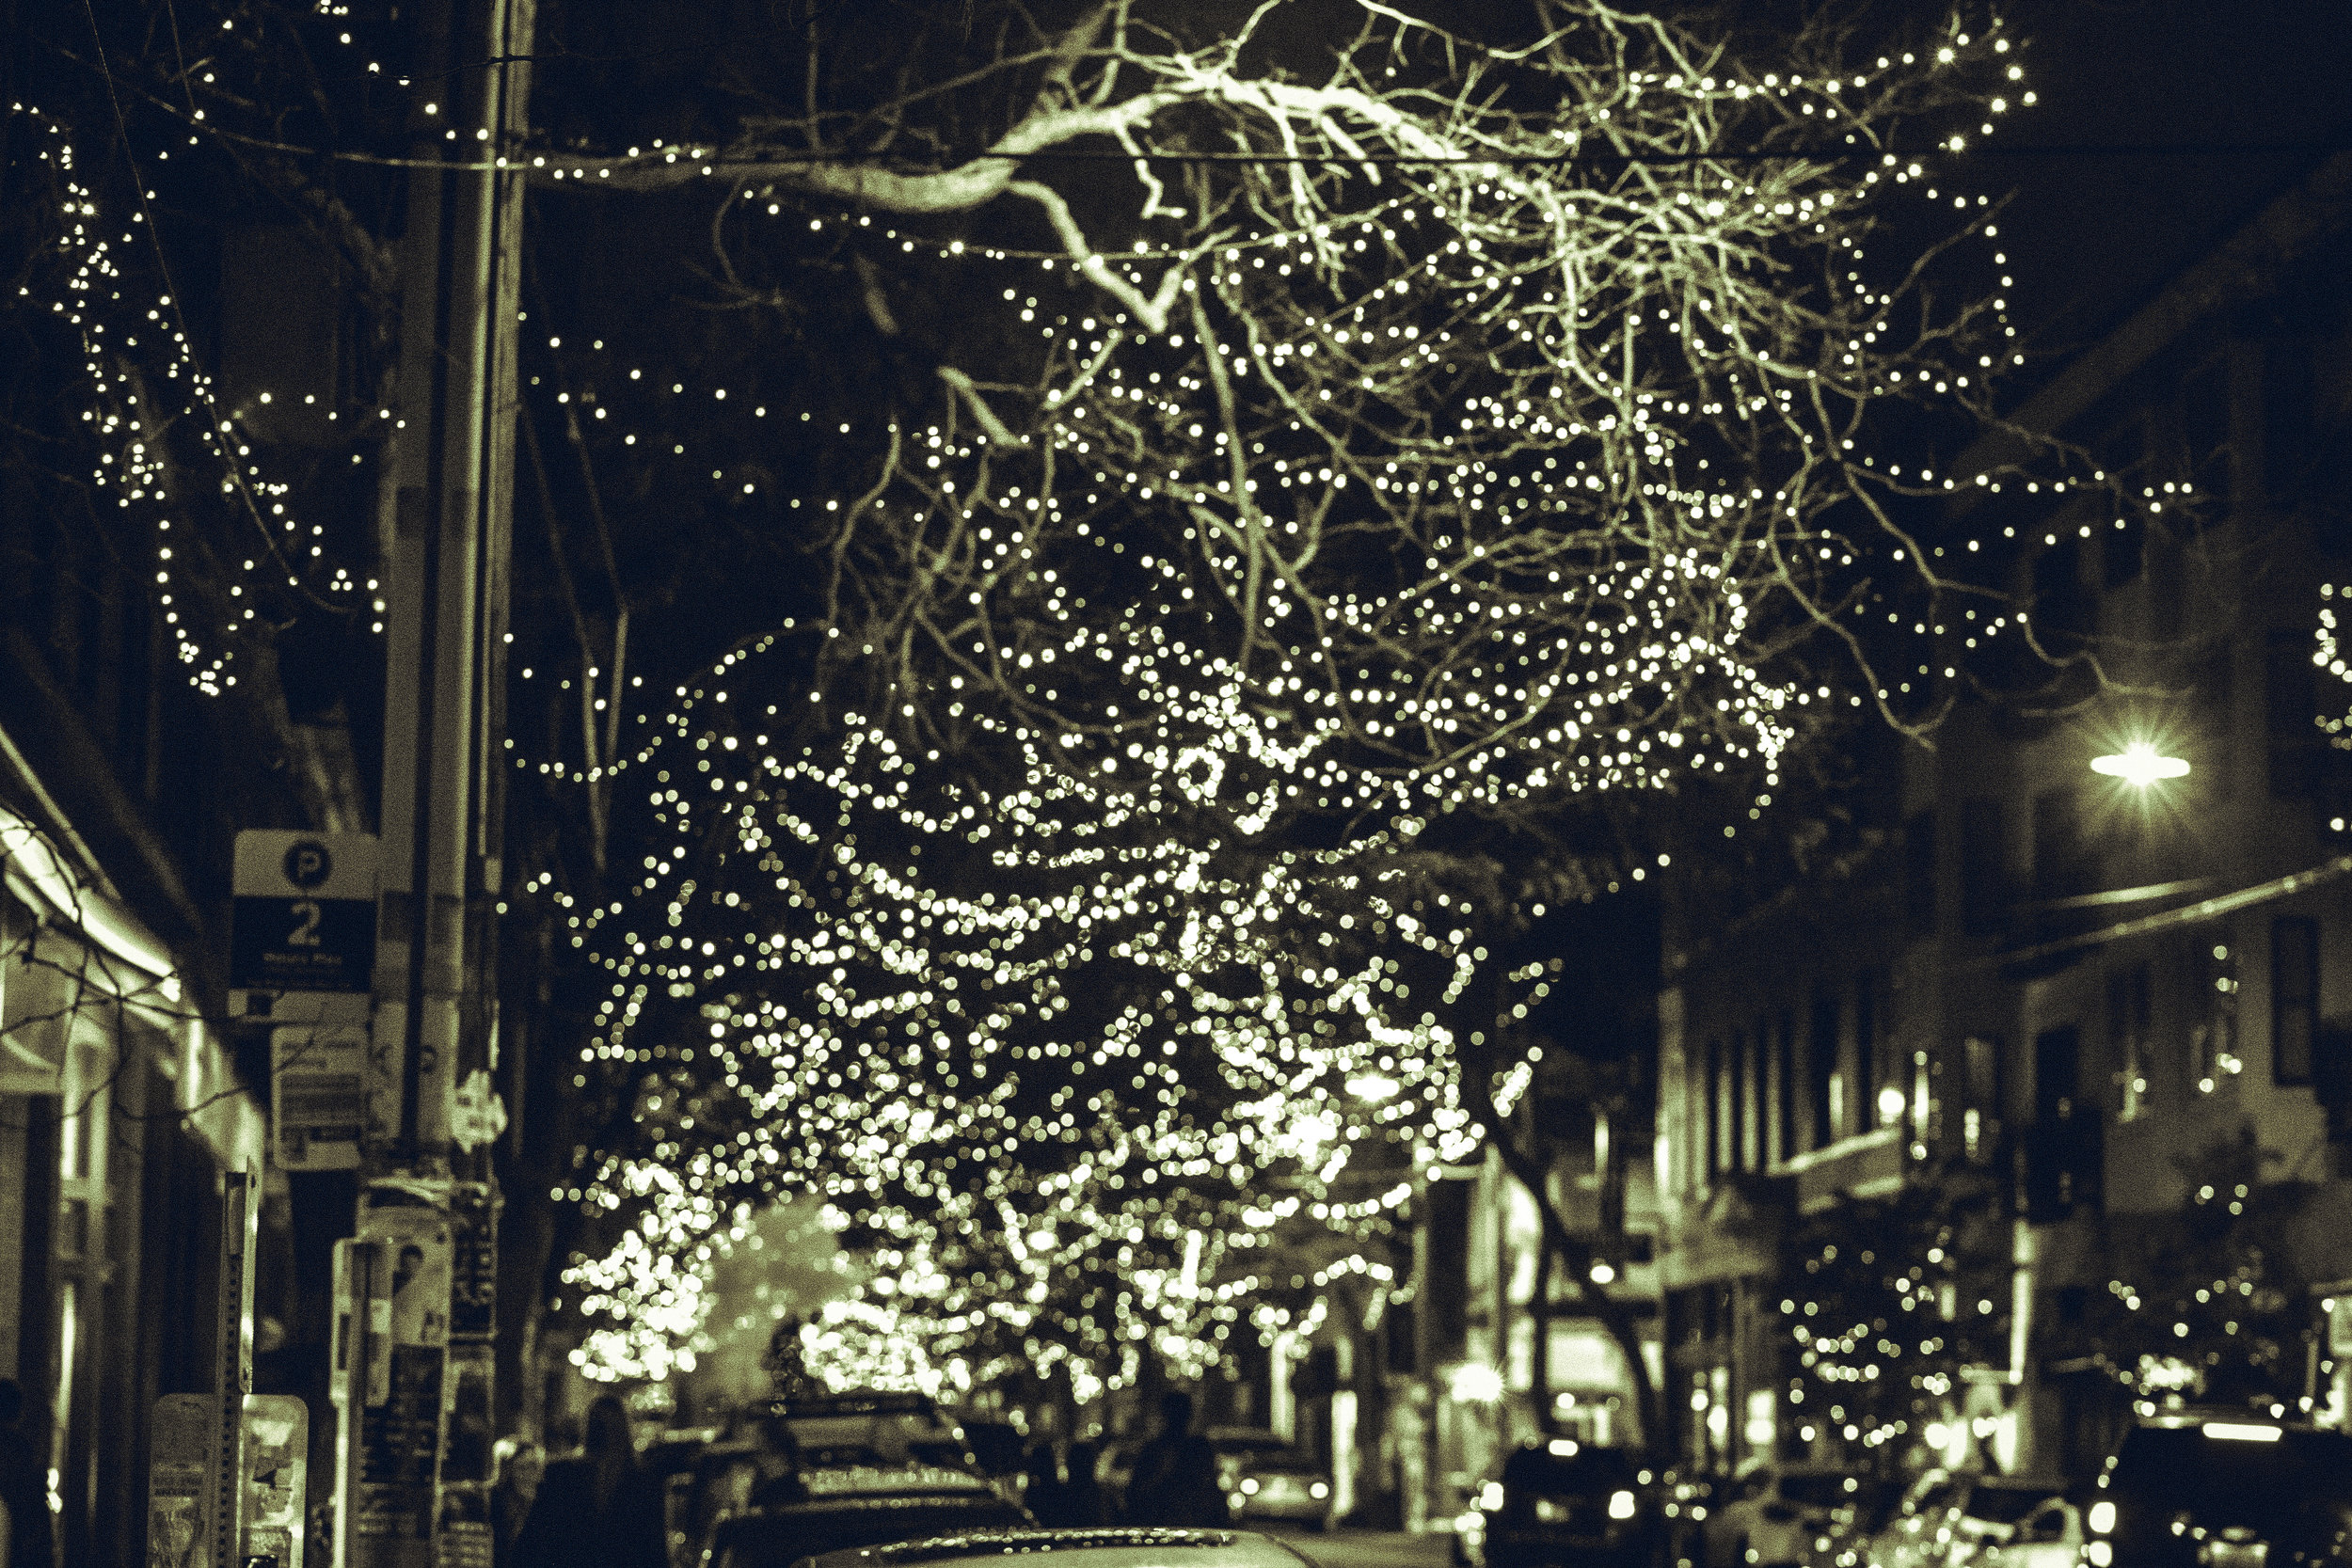 I'll also make an assumption and say the city of Ballard means to include Thanksgiving as part of the celebration and not just as month and a half early Christmas lights. Save your Christmas trees until after the 23rd of this month! Gobble Gobble.